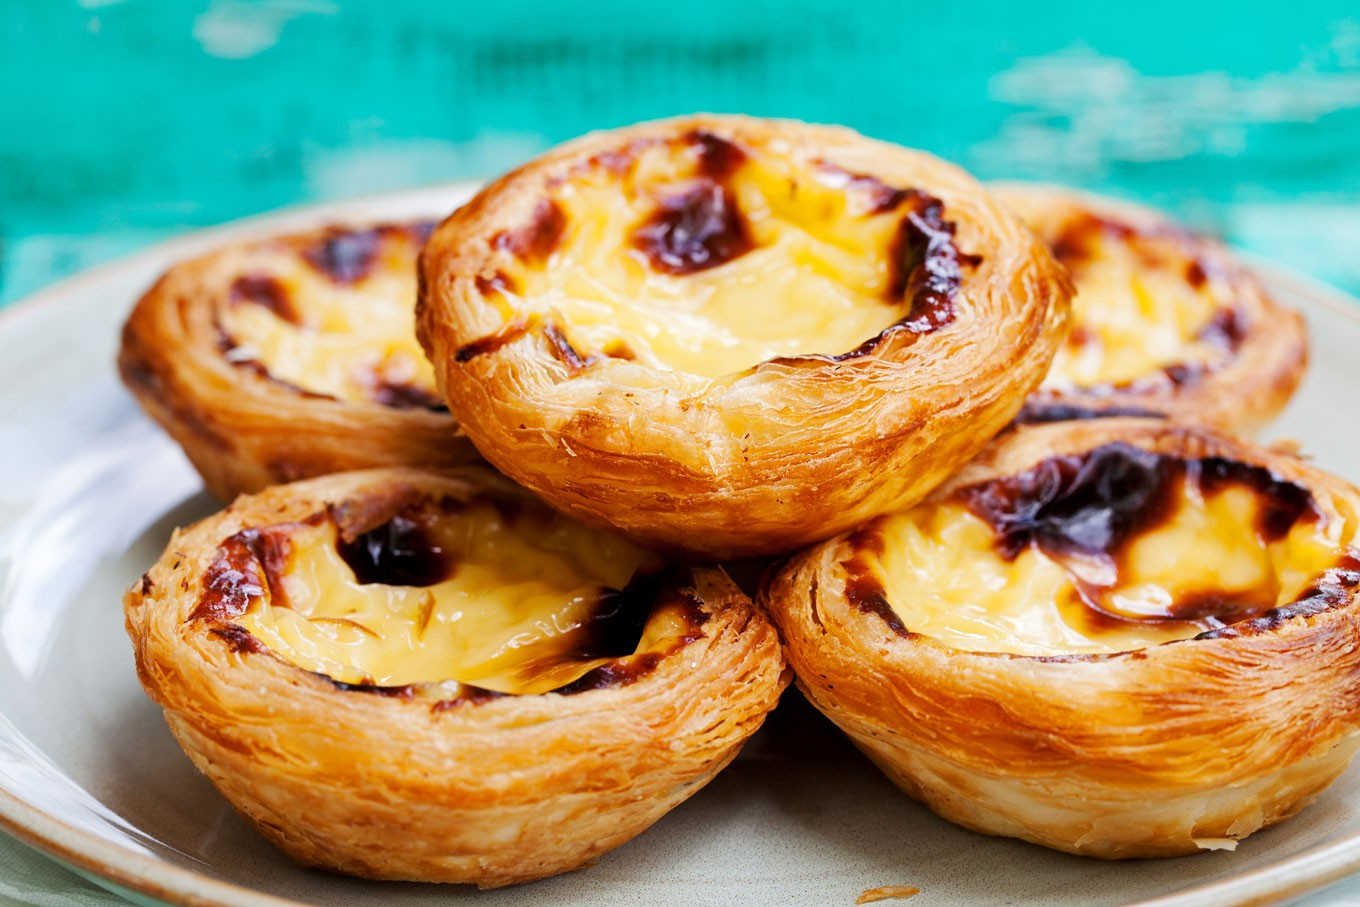 Image for Have you ever chowed down on one of the Portuguese egg tarts that can be found in Macau and Hong Kong?